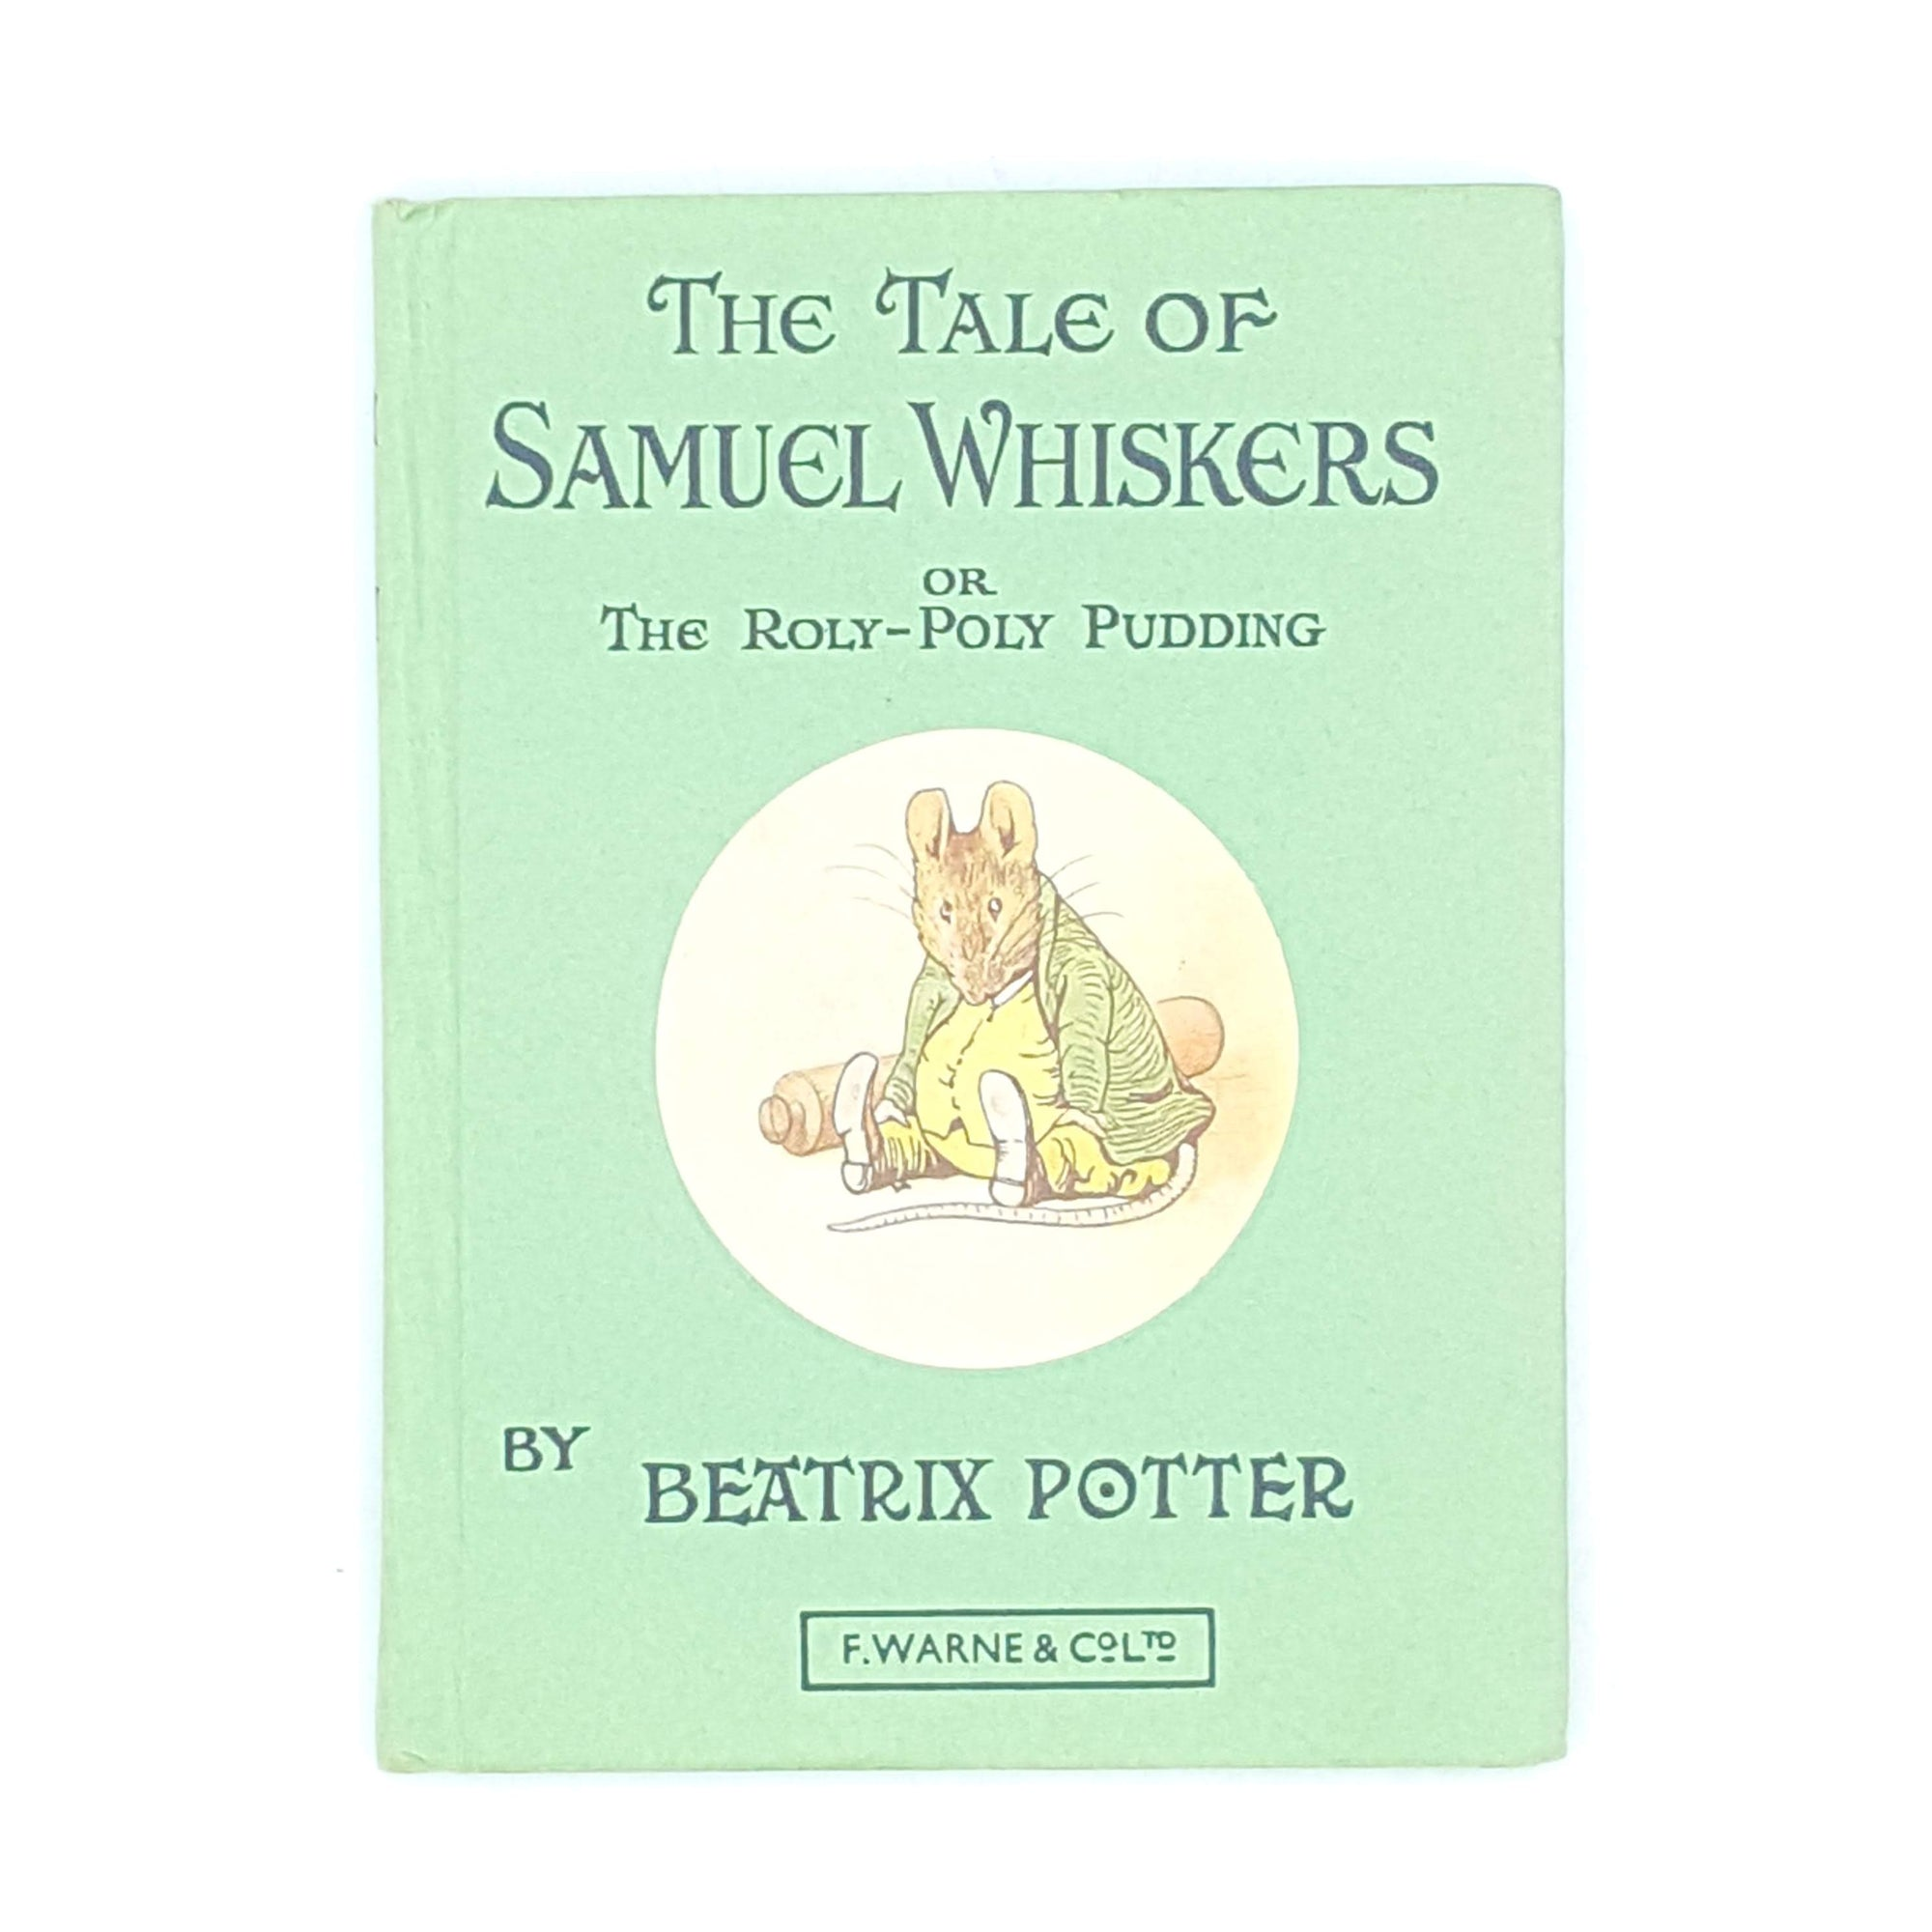 Beatrix Potter's The Tale of Samuel Whiskers, light green cover